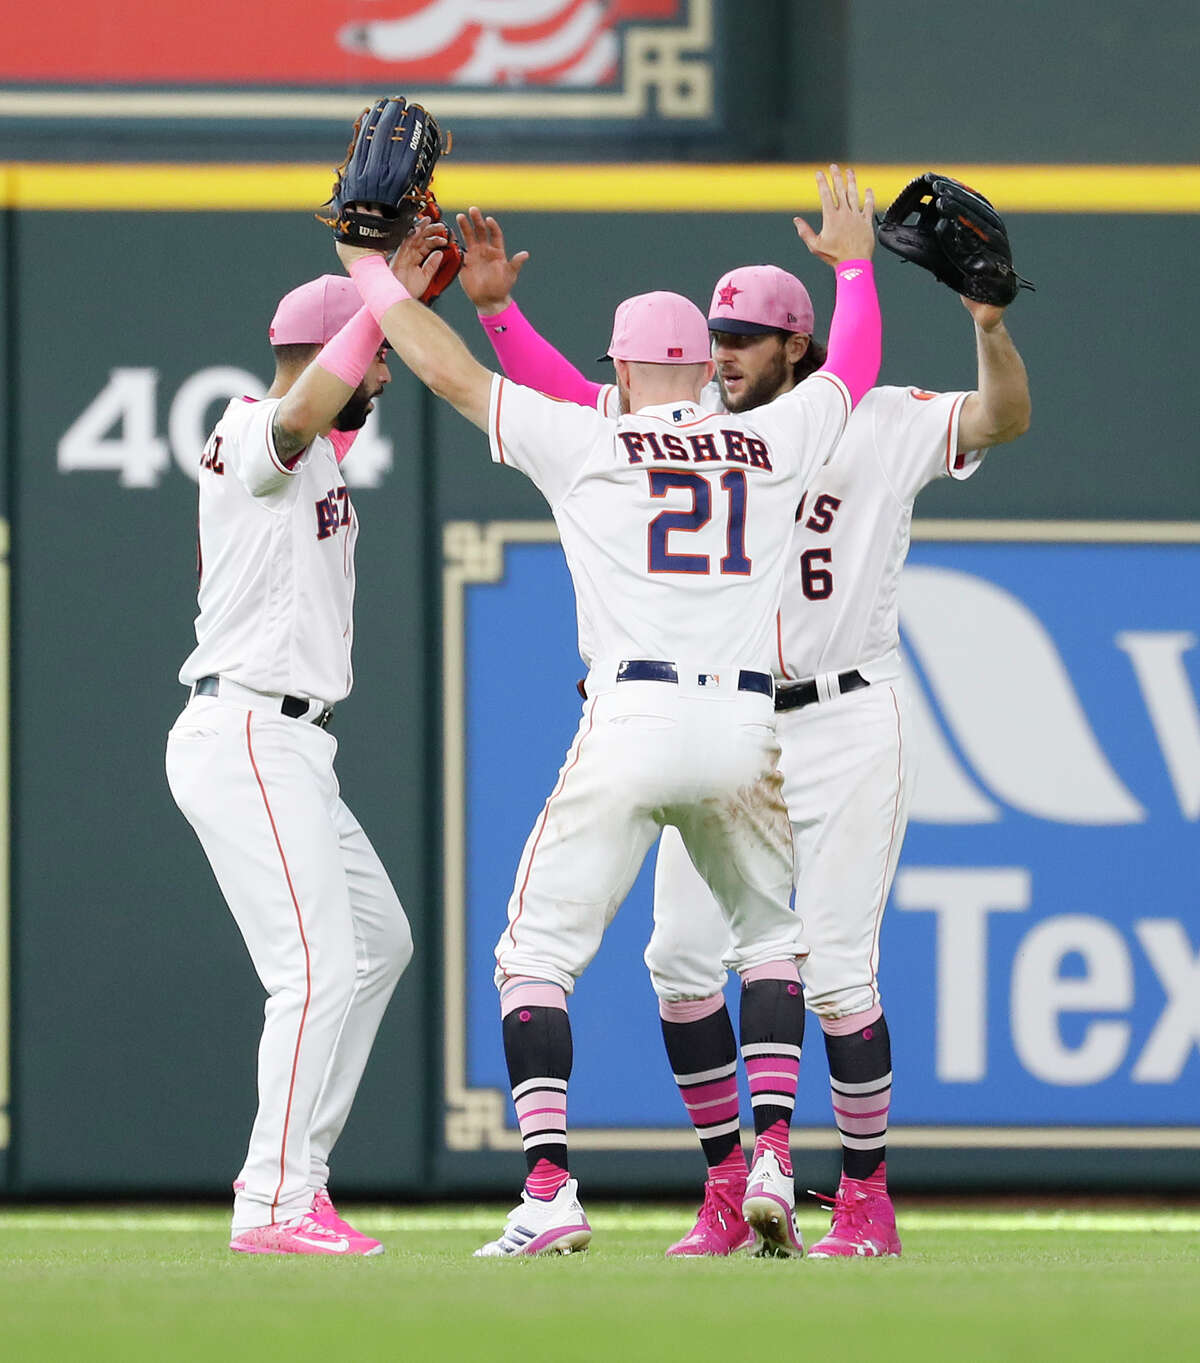 Houston Astros Derek Fisher (21), Jake Marisnick (6), and Marwin Gonzalez (9)celebrate after relief pitcher Brad Peacock closed out the ninth inning of an MLB game at Minute Maid Park, Sunday, May 13, 2018, in Houston. ( Karen Warren / Houston Chronicle )